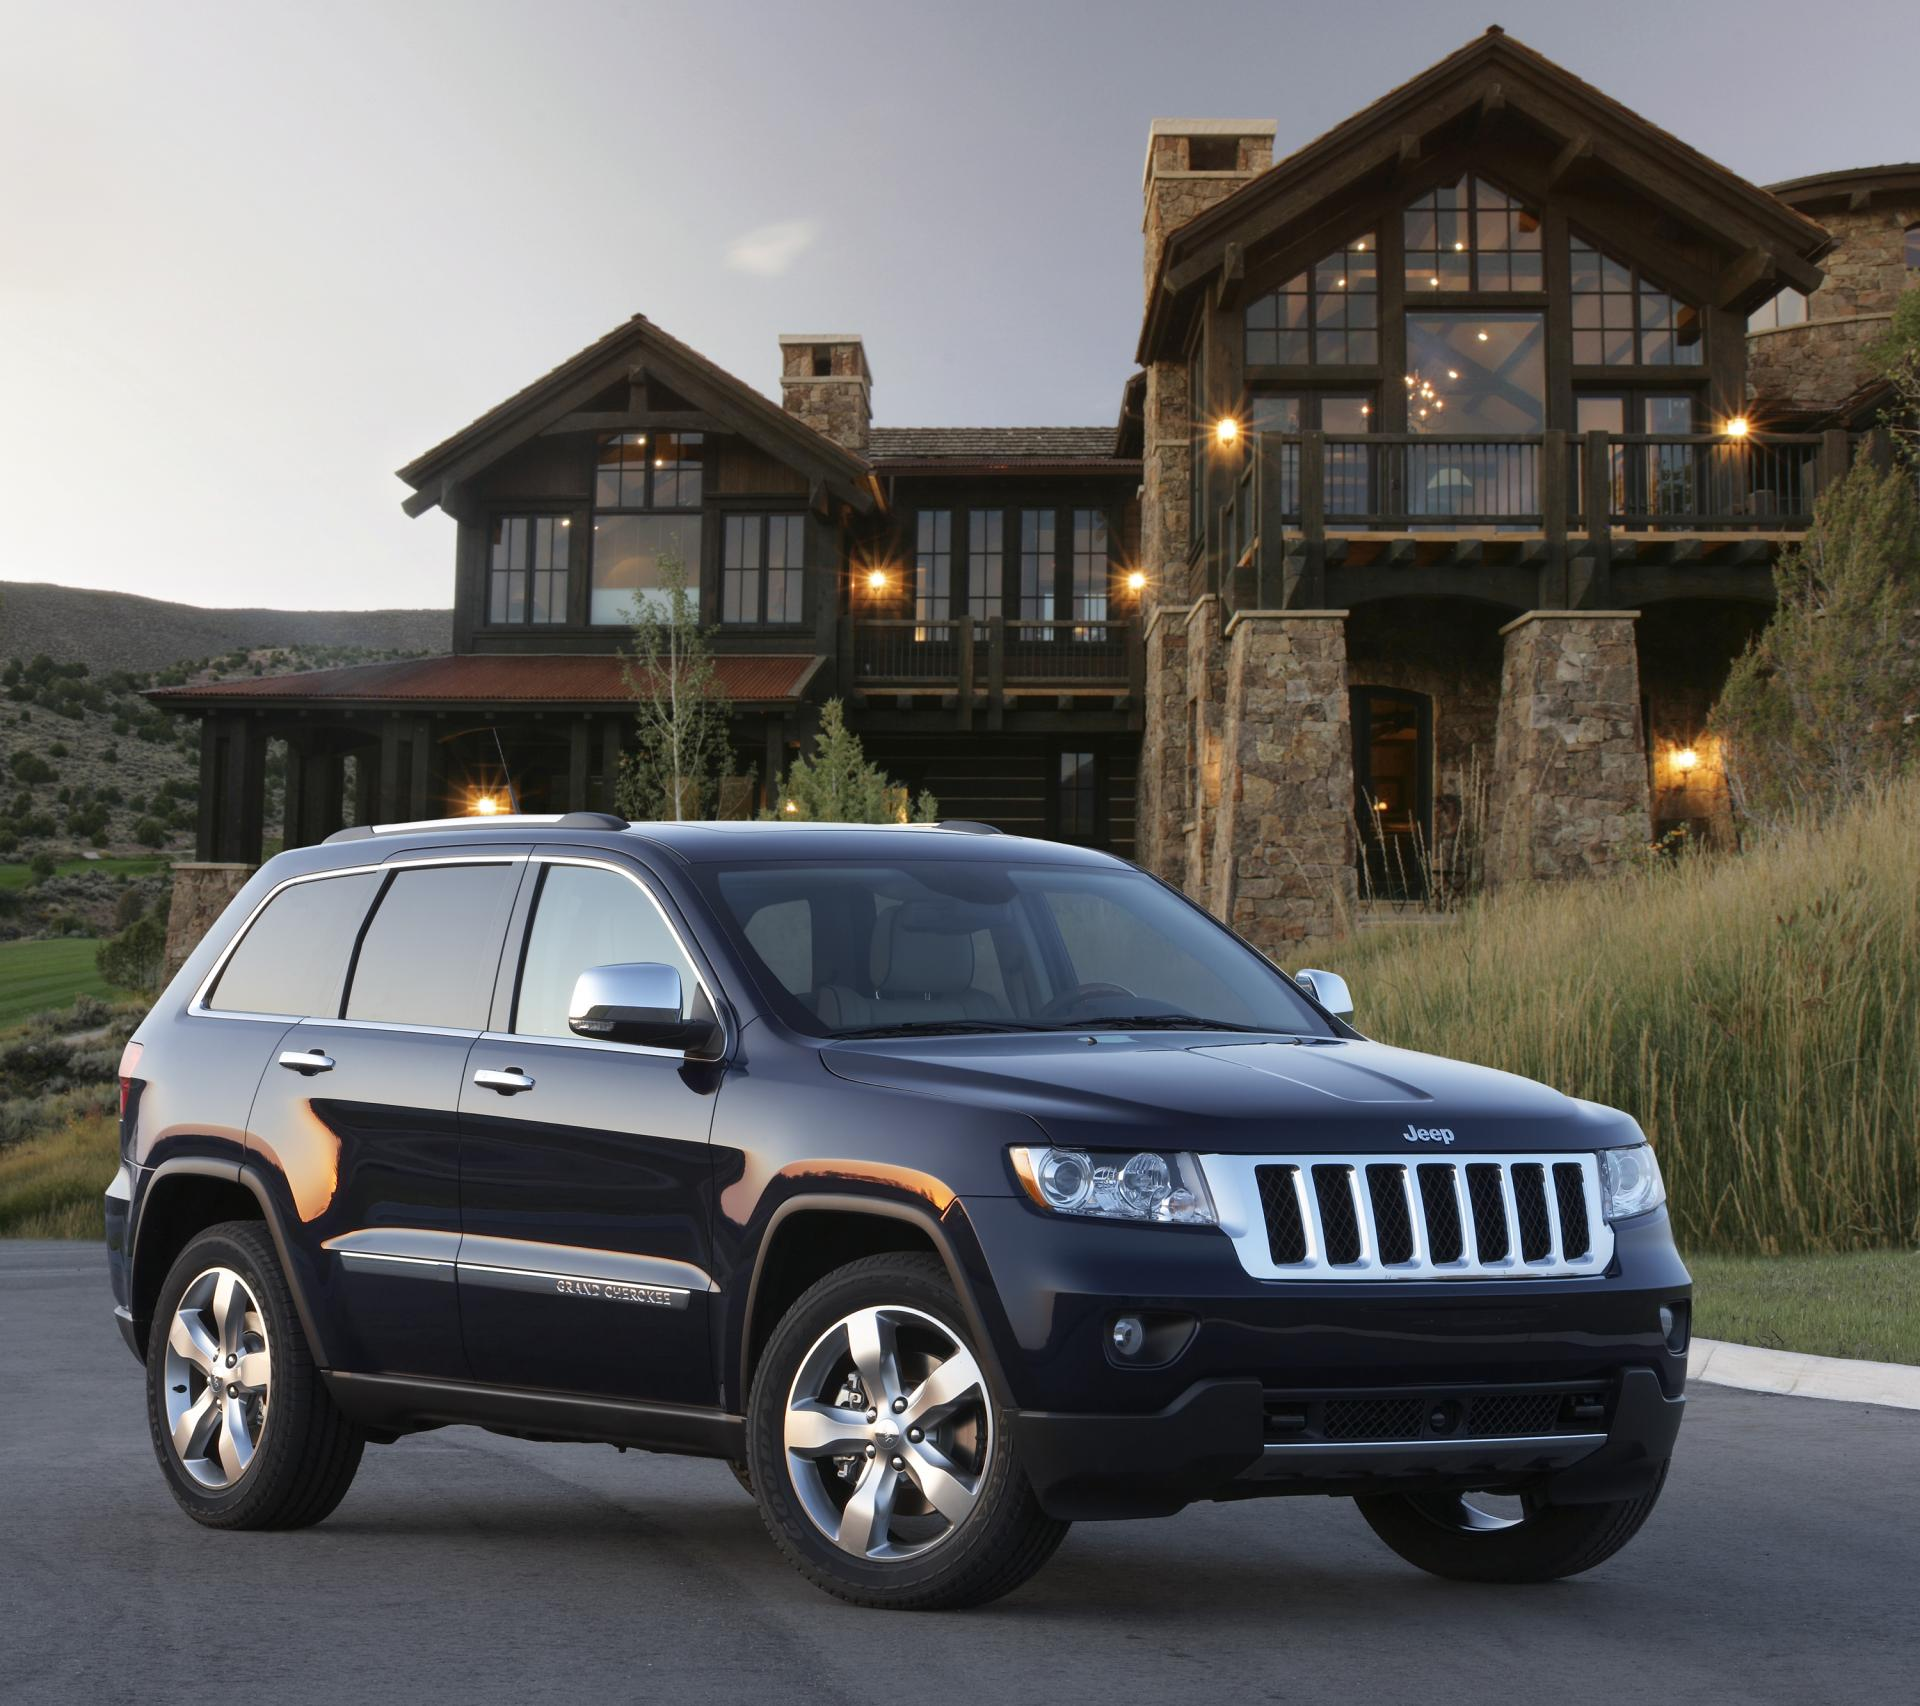 2012 jeep grand cherokee news and information. Black Bedroom Furniture Sets. Home Design Ideas